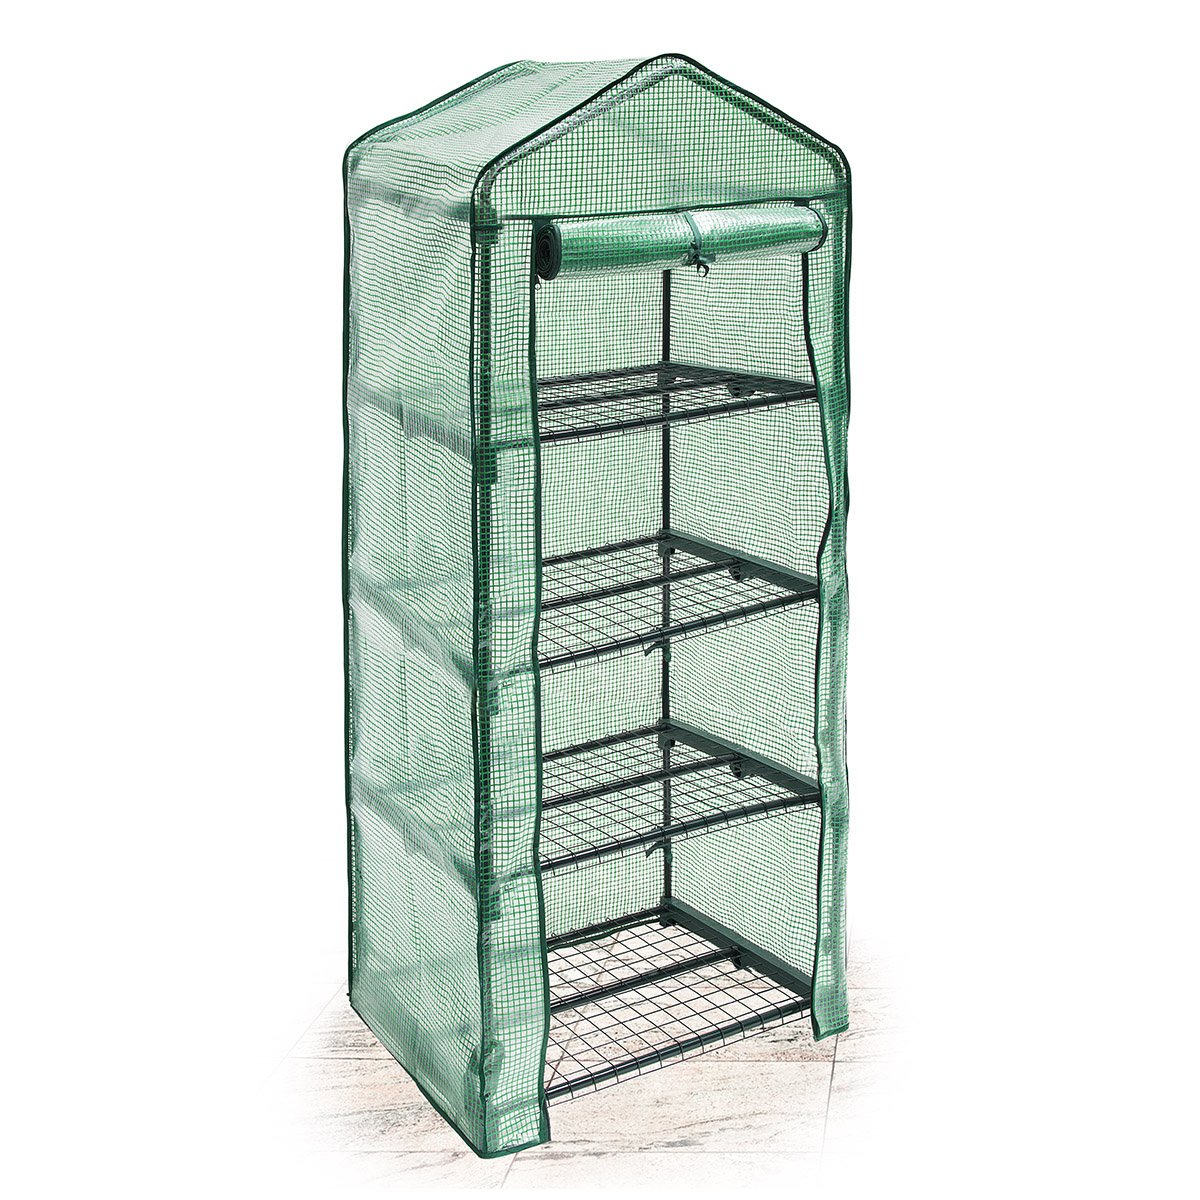 Relaxdays Greenhouse 2 Levels Tear-Resistant Growth Support for Plants, Levels Each of 60 x 46 cm (23.6 x 18.1 in) 10018891